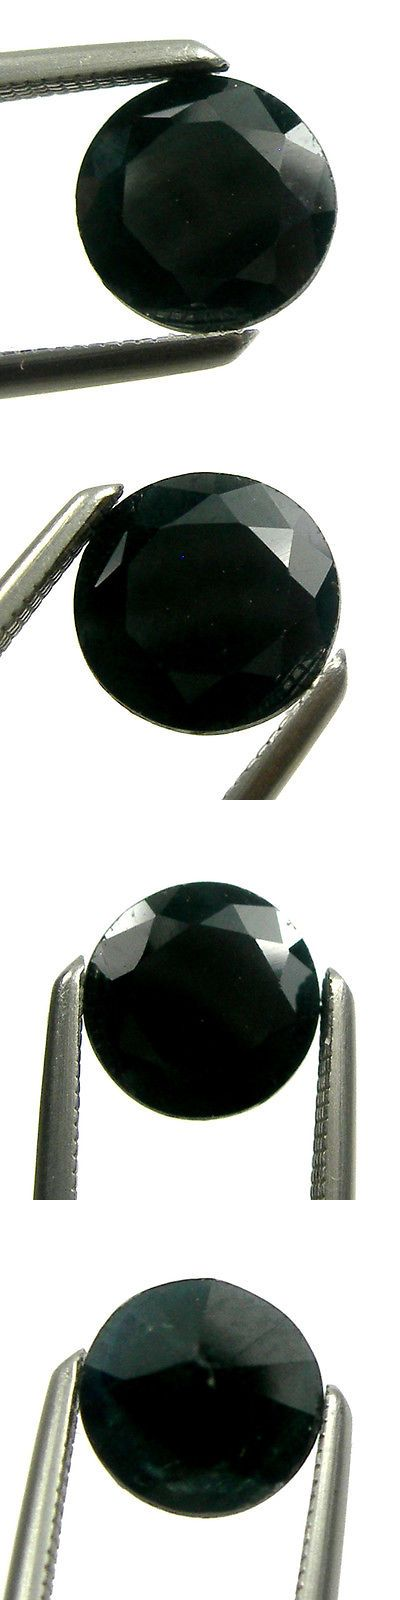 Other Sapphires 164408: 1.22 Carat 6.30Mm Round Black Color Natural Australian Sapphire Loose Gemstone -> BUY IT NOW ONLY: $79.3 on eBay!